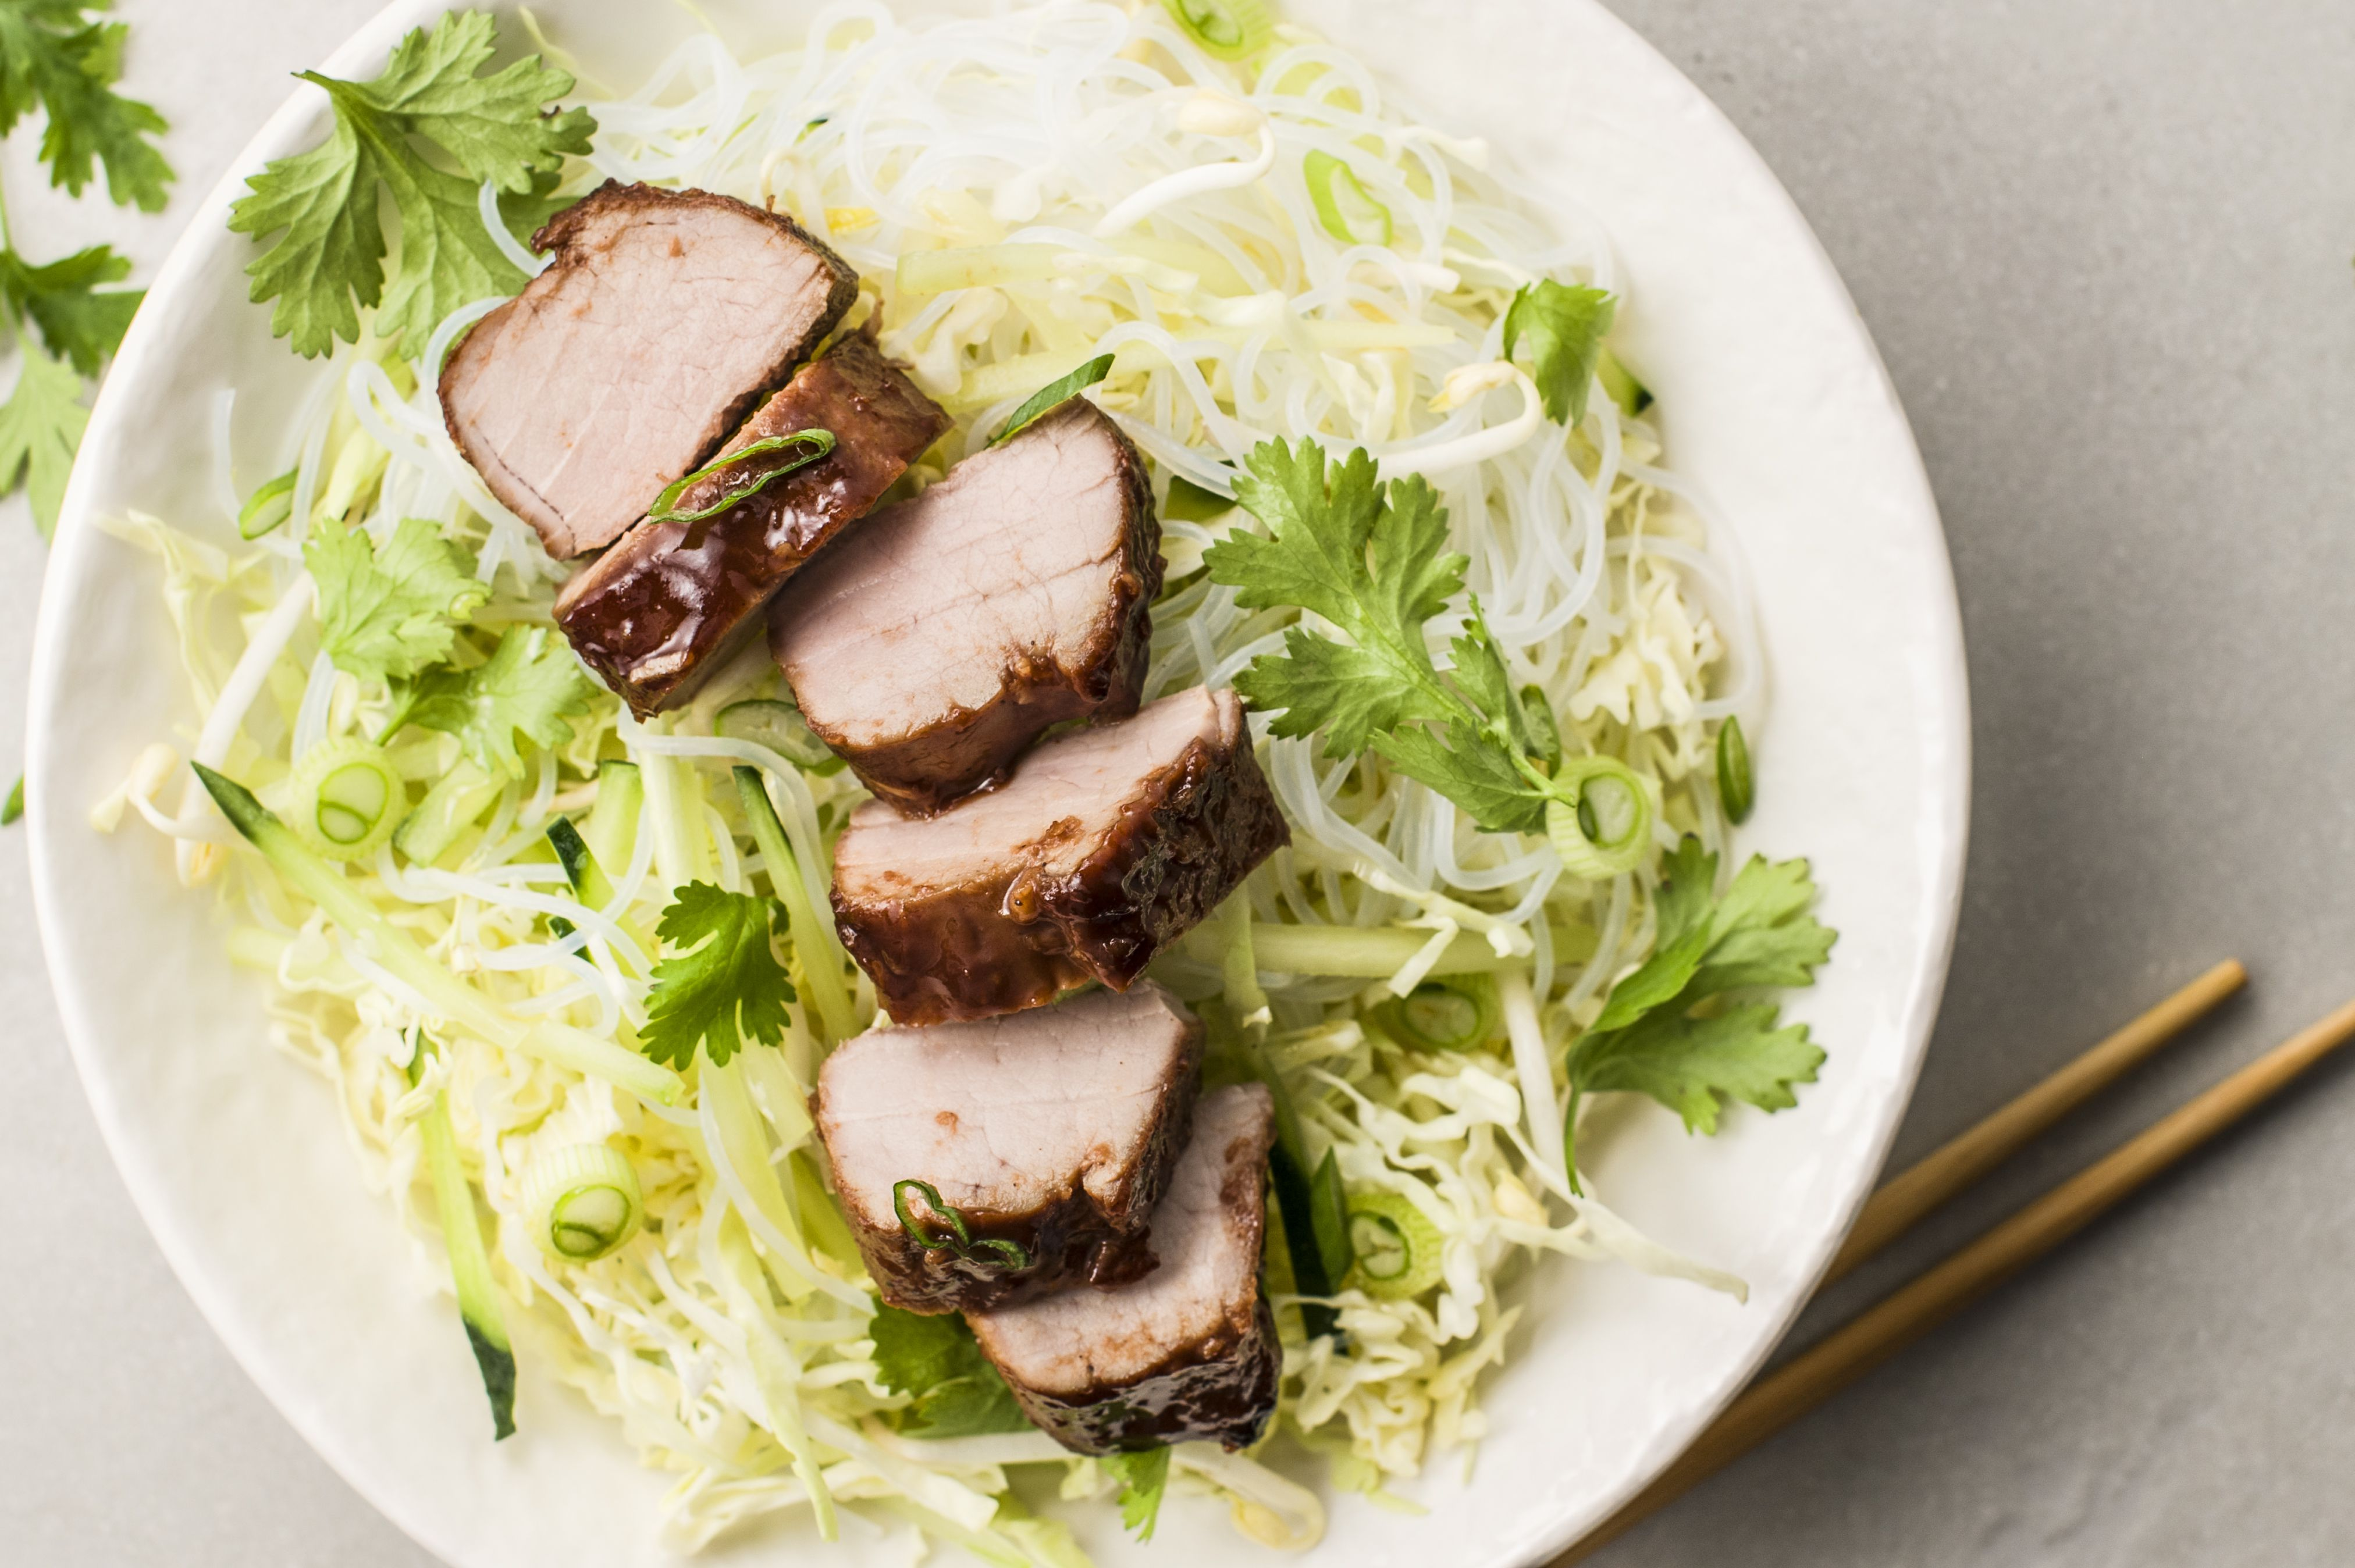 Chinese-Style Barbecued Pork (Char Siu)